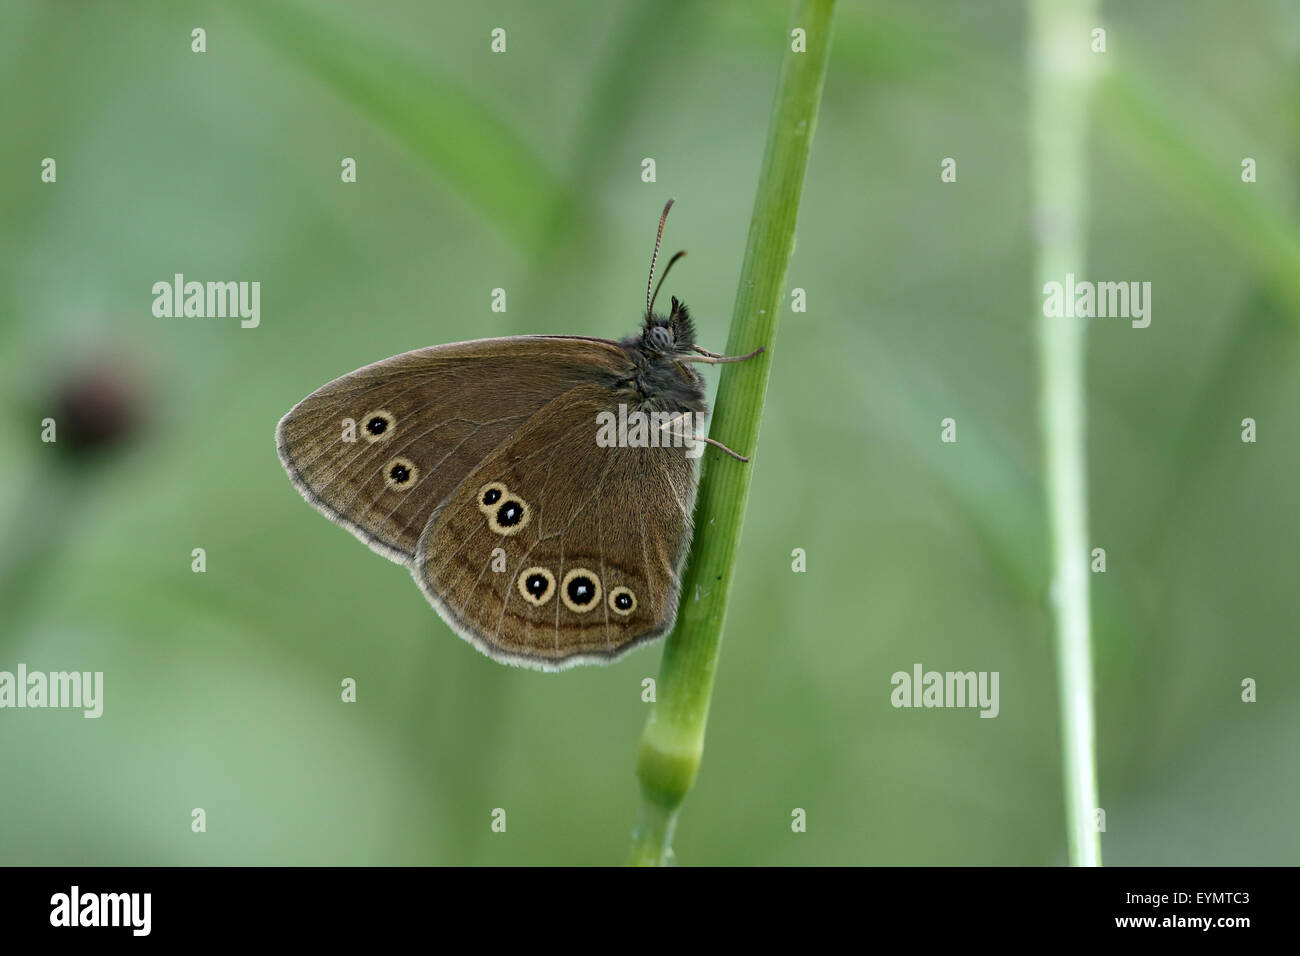 Ringlet Butterfly, Aphantopus hyperantus, single insect on grass, Warwickshire, July 2015 - Stock Image